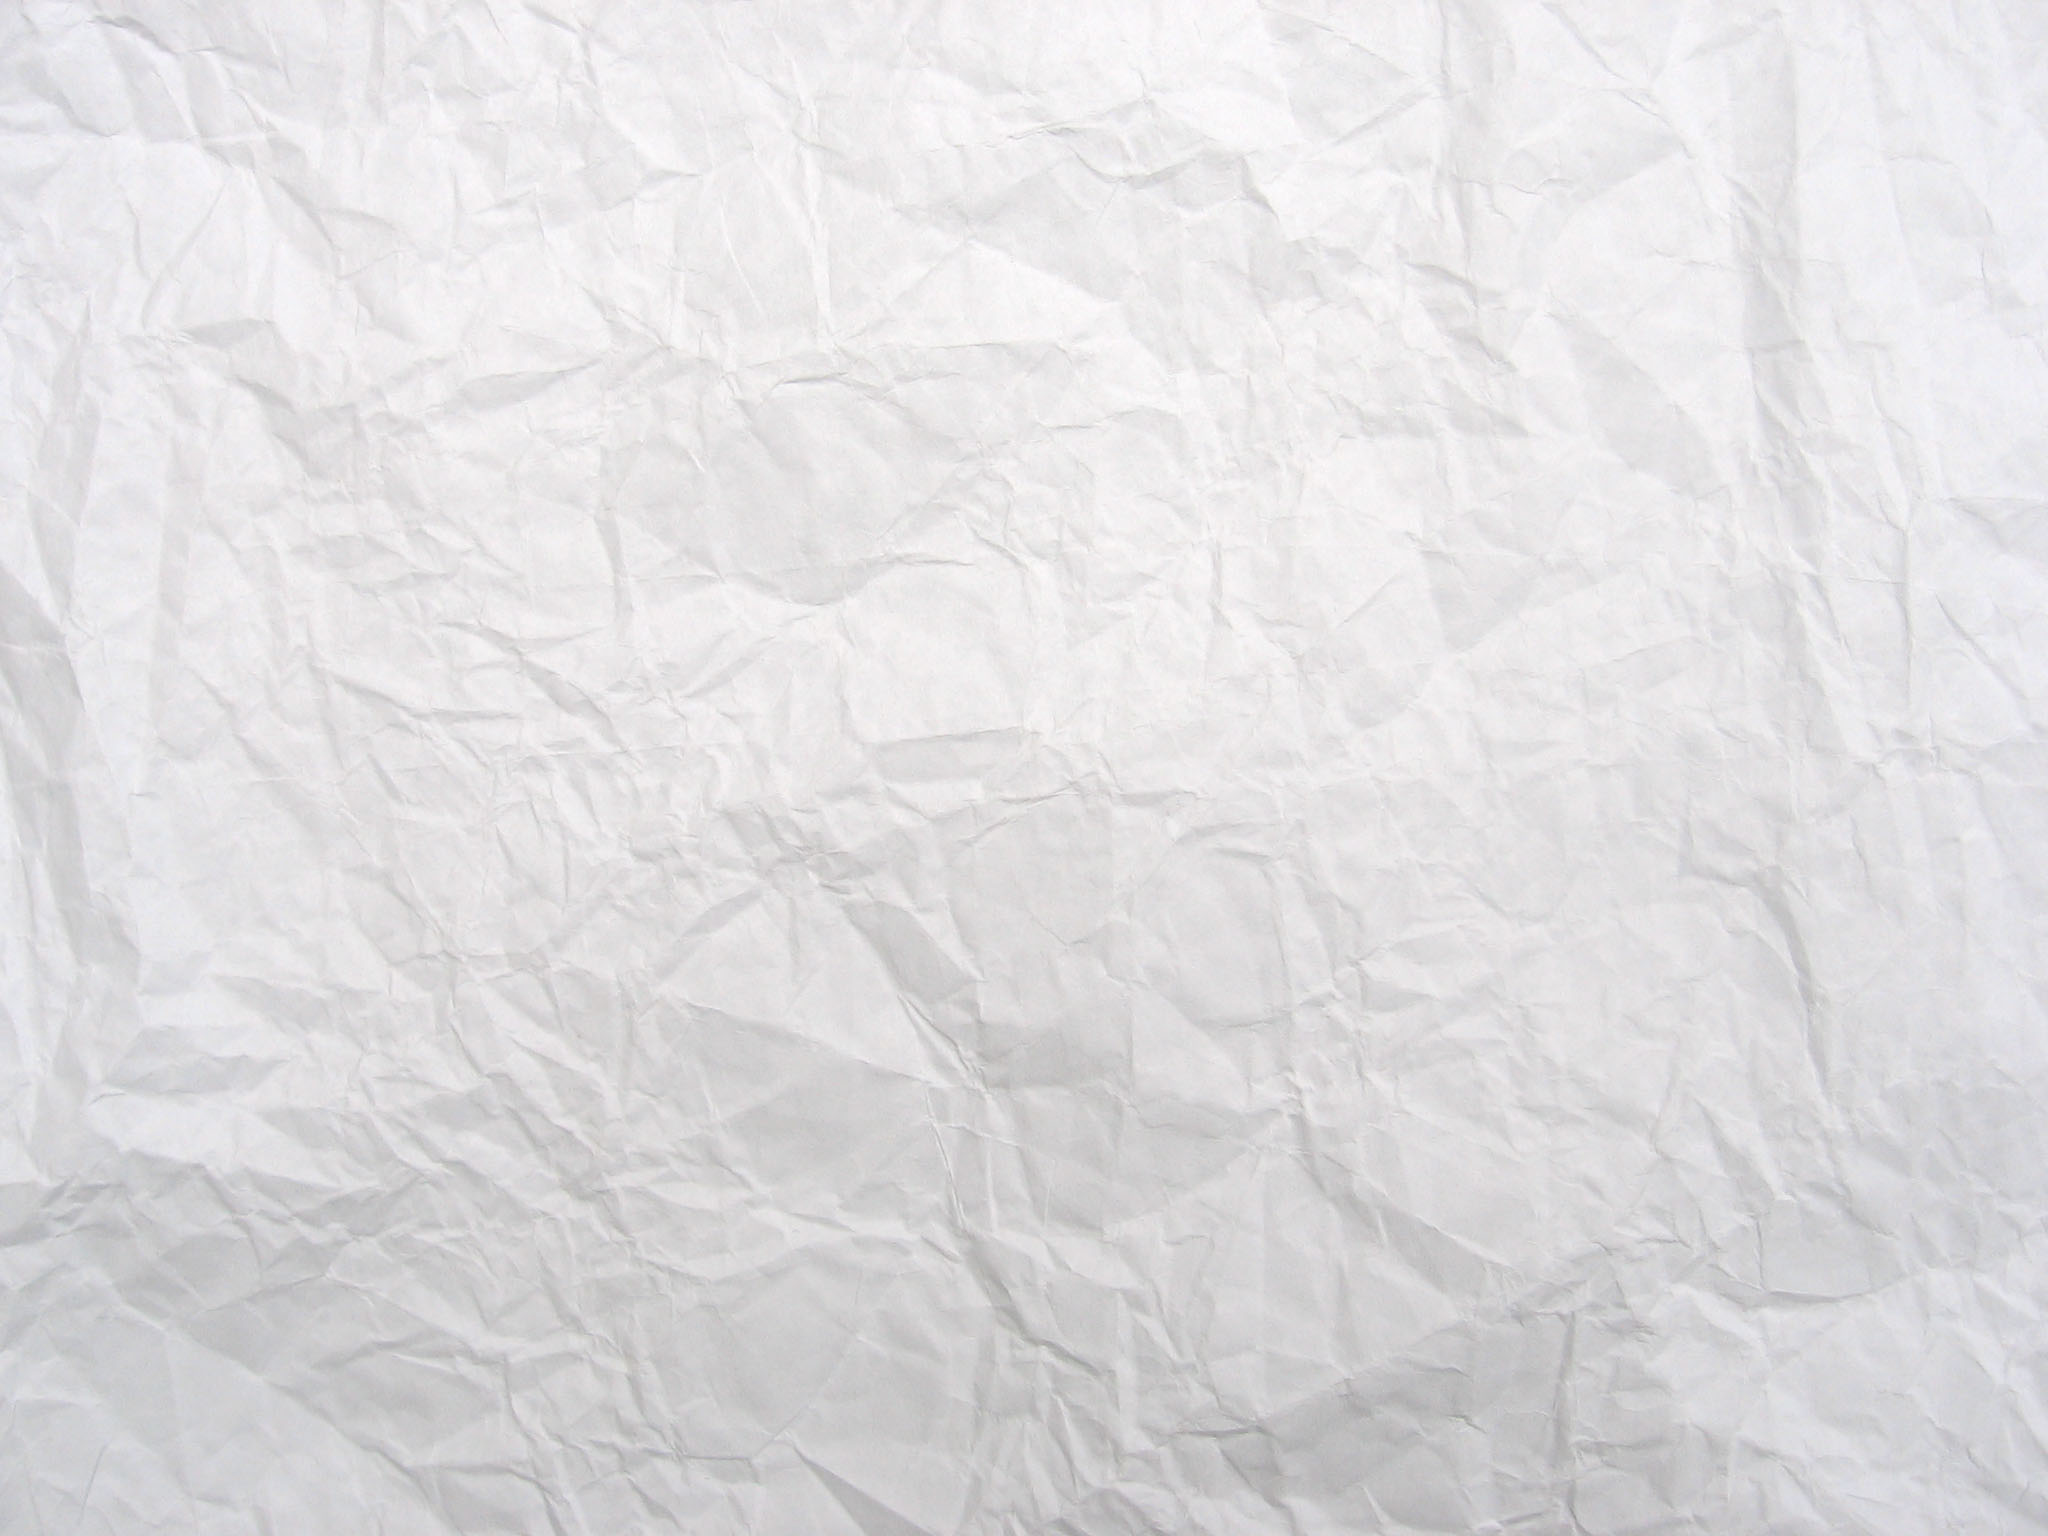 Crumpled White Paper High Resolution In HD Wallpaper Photo | WALLSEV.